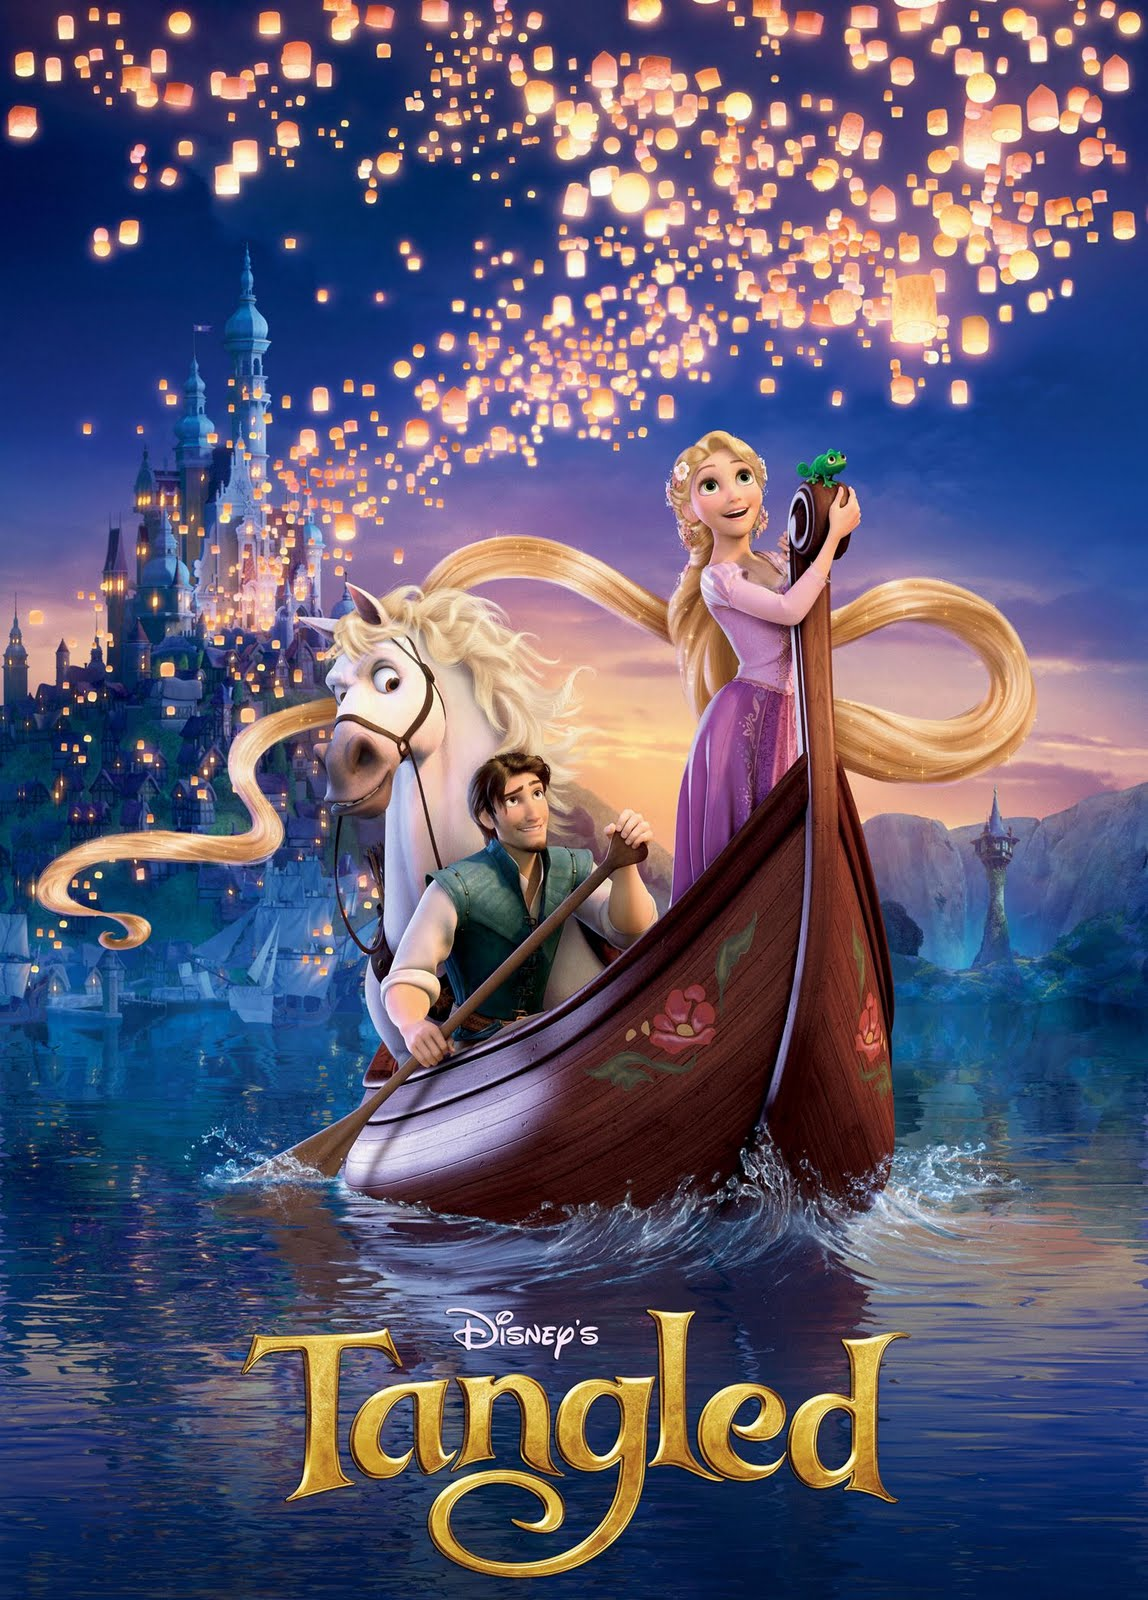 11 Disney Tangled Princess Rapunzel Wear Purple Dress 1148x1600